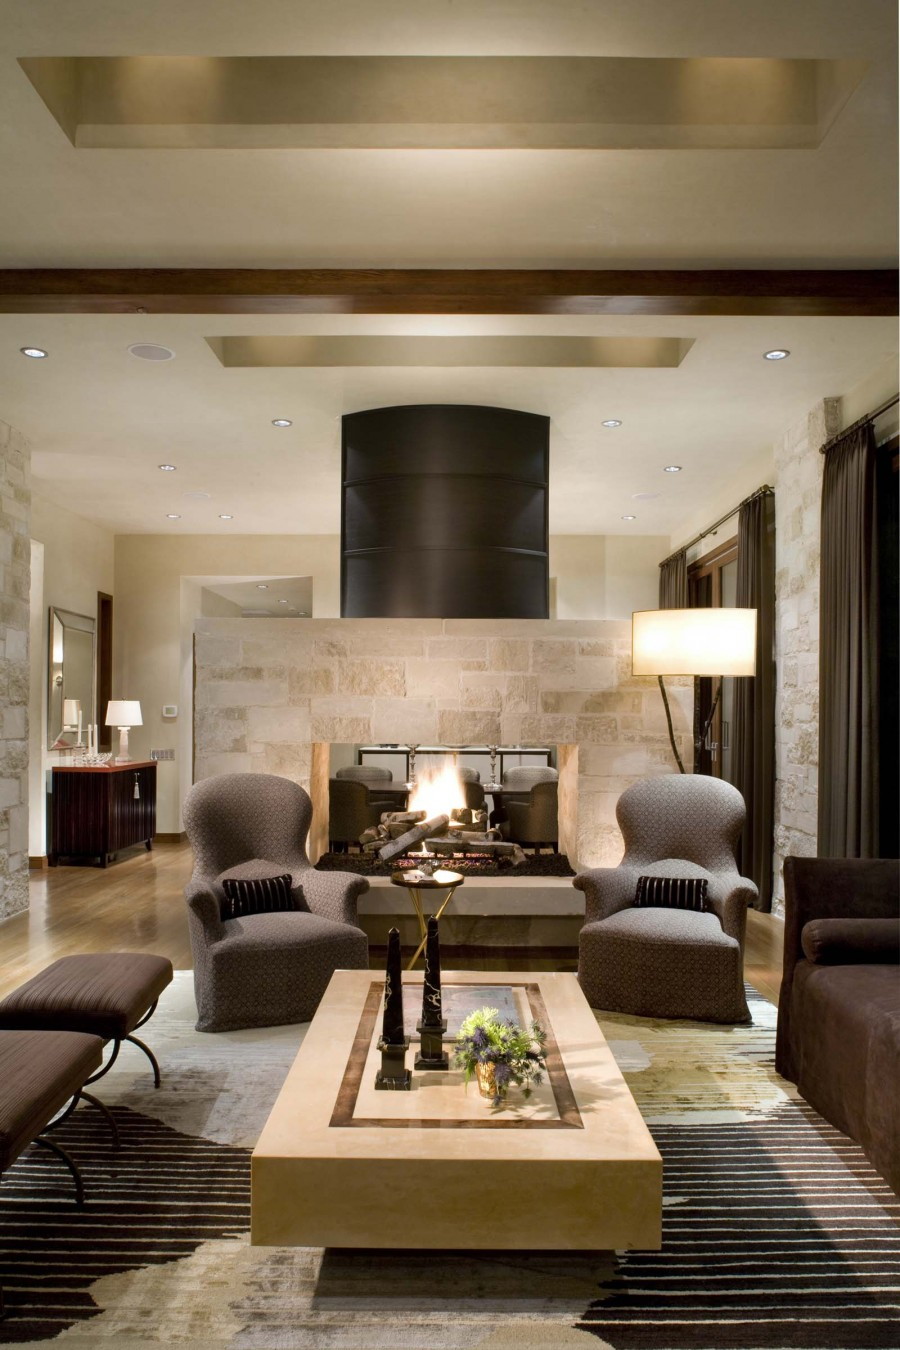 16 fabulous earth tones living room designs decoholic - Contemporary living room ideas ...